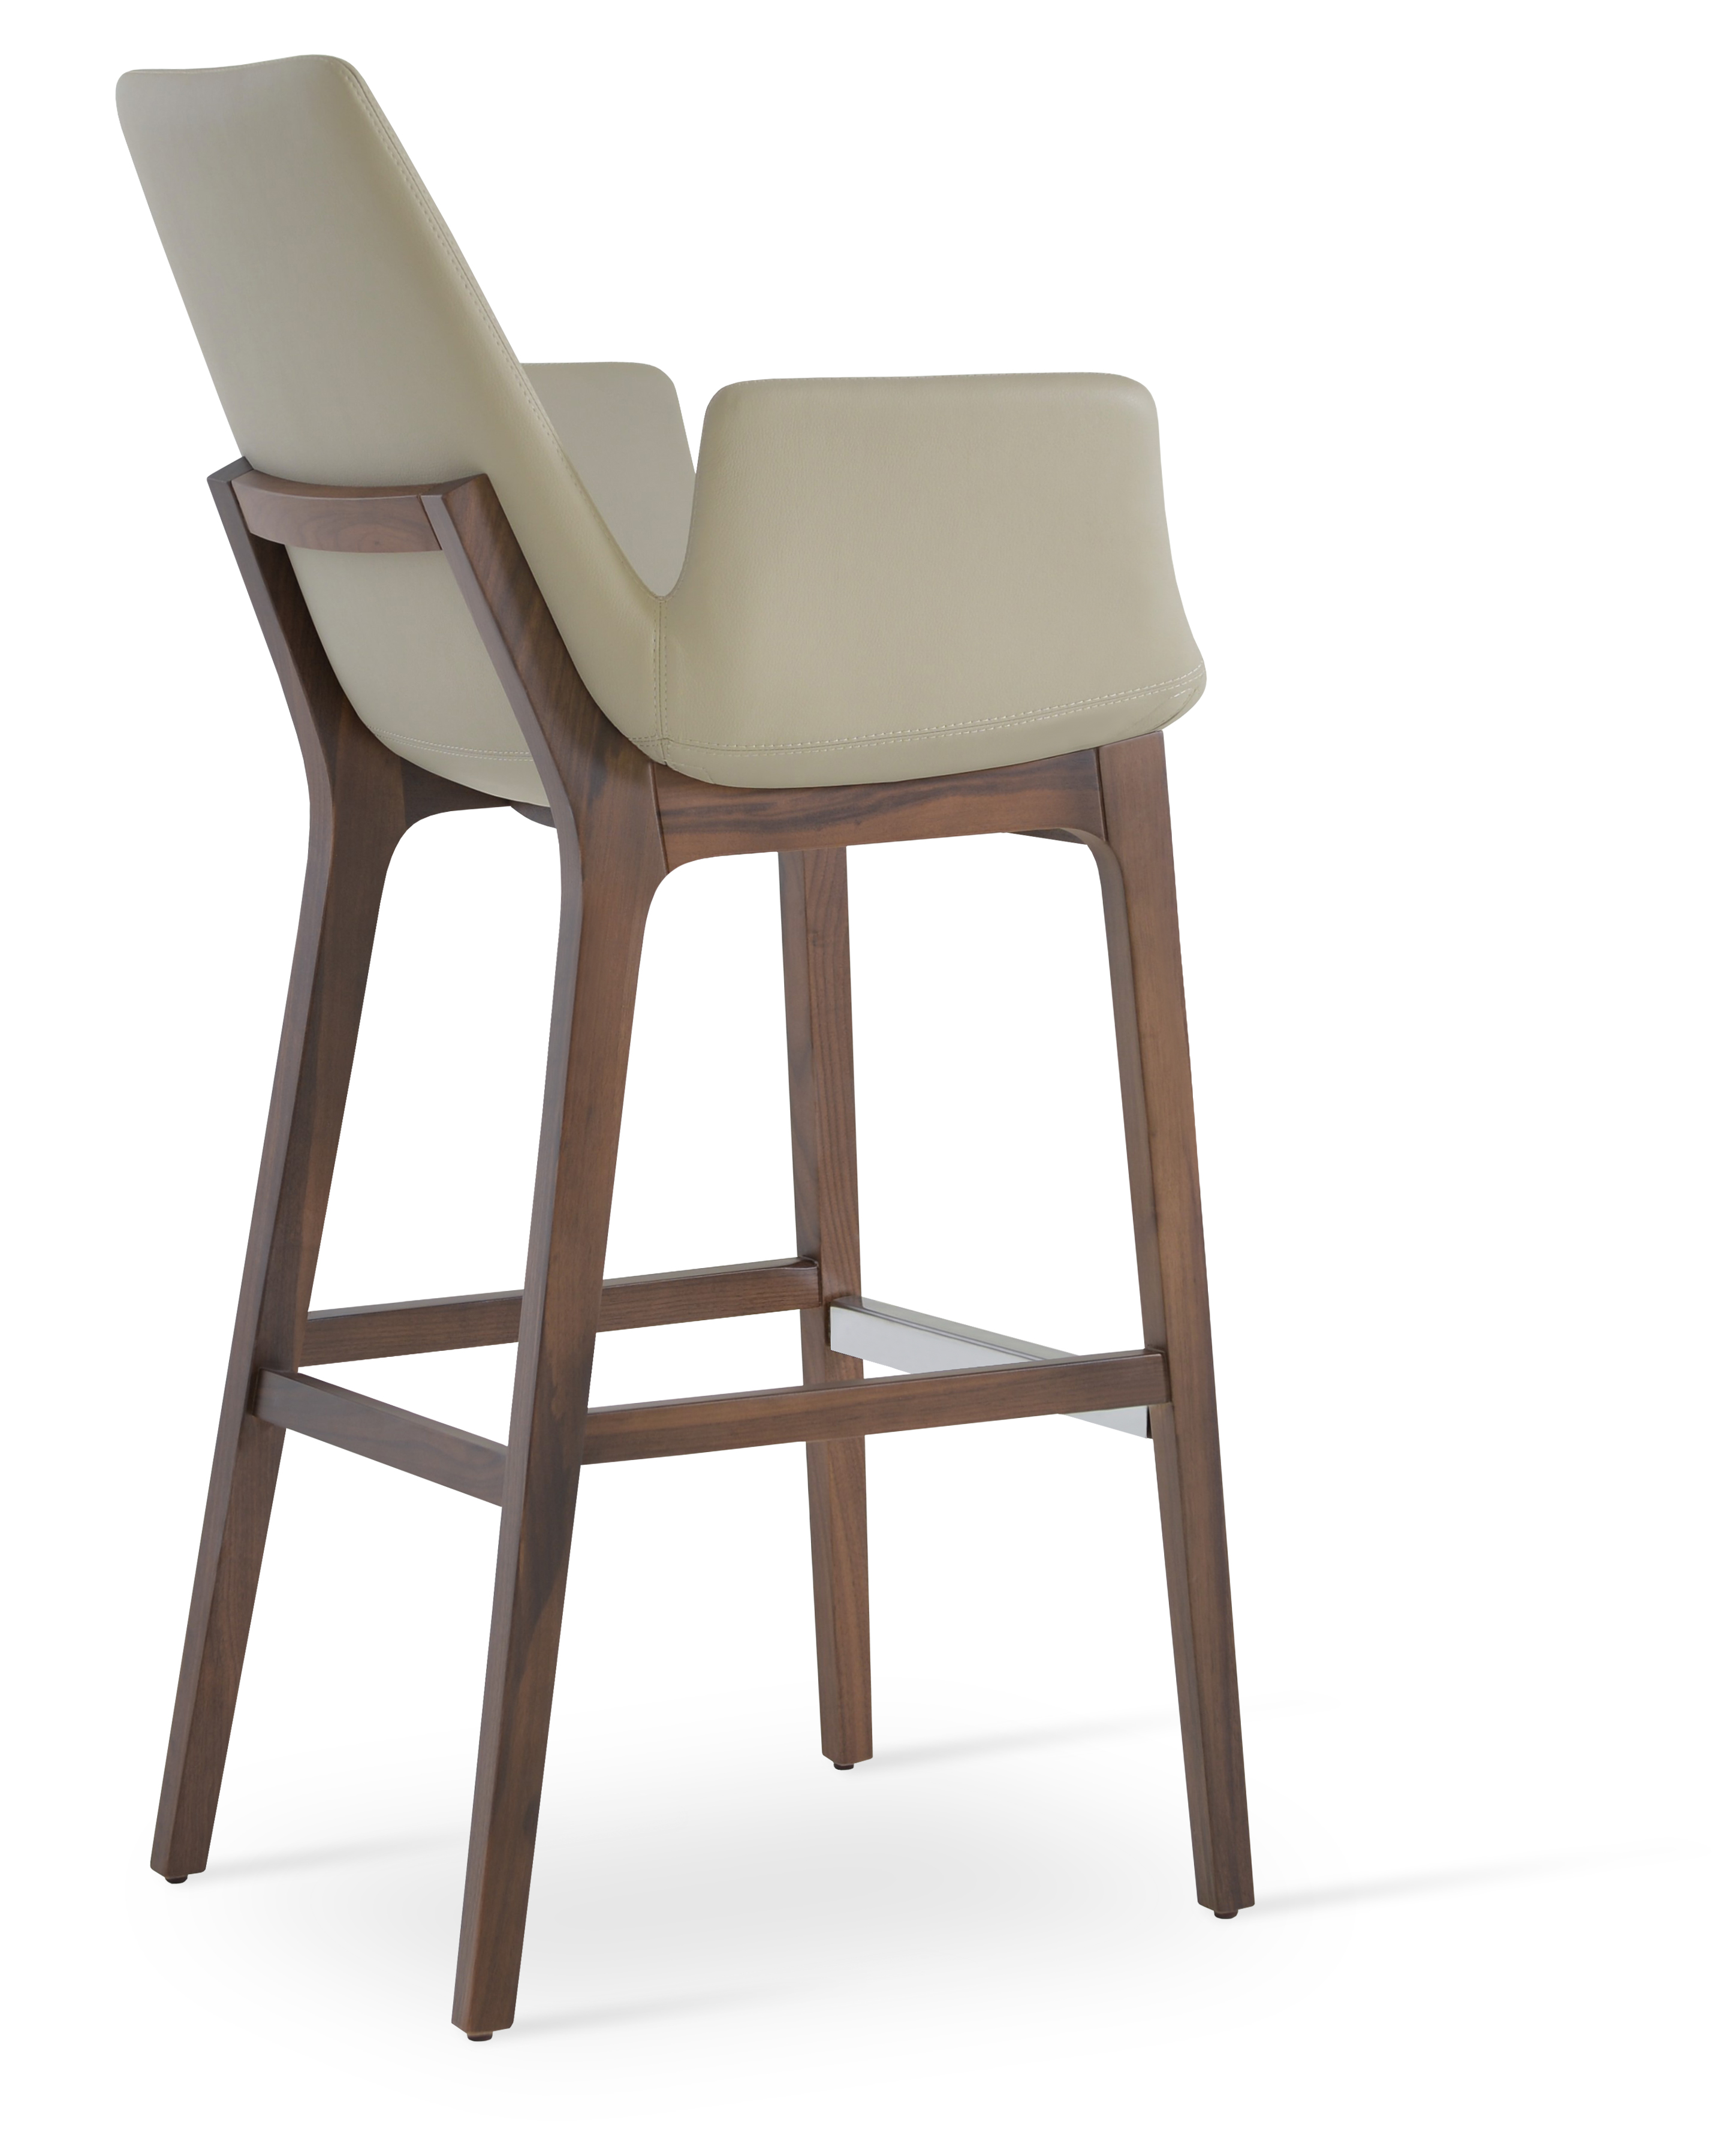 Eiffel Wood Arm Stools Euroform Contract Furniture